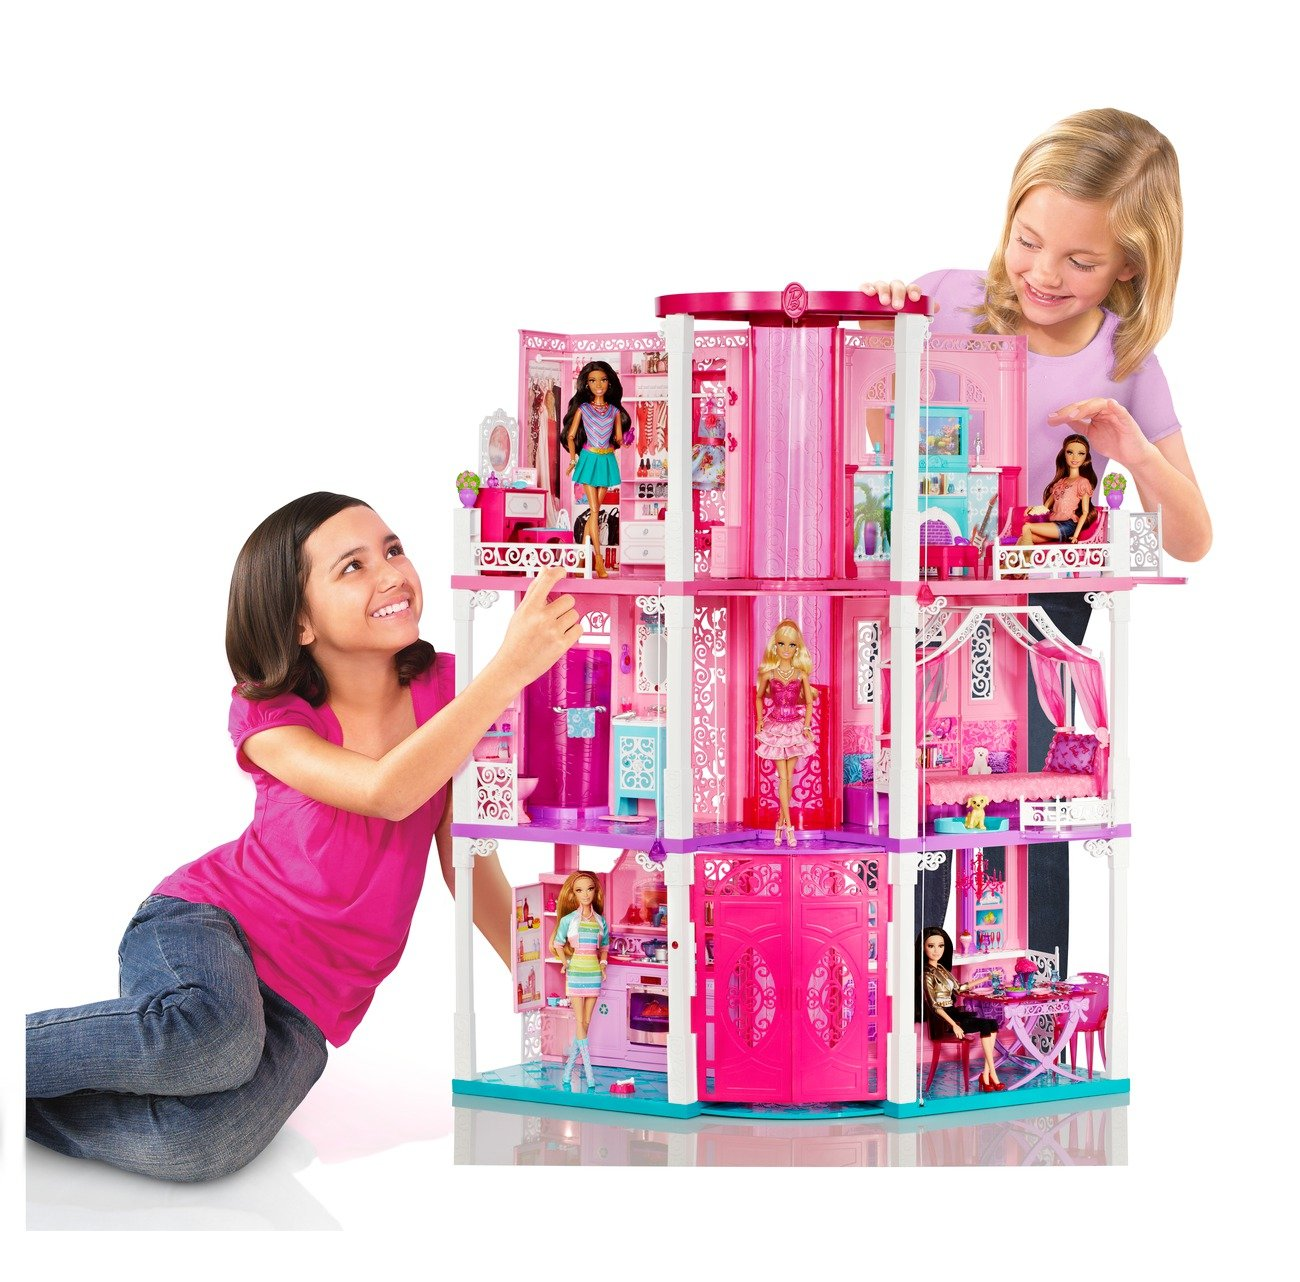 1st dream house furniture amazoncom barbie dream house discontinued by manufacturer toys amp games ashine lighting workshop 02022016p